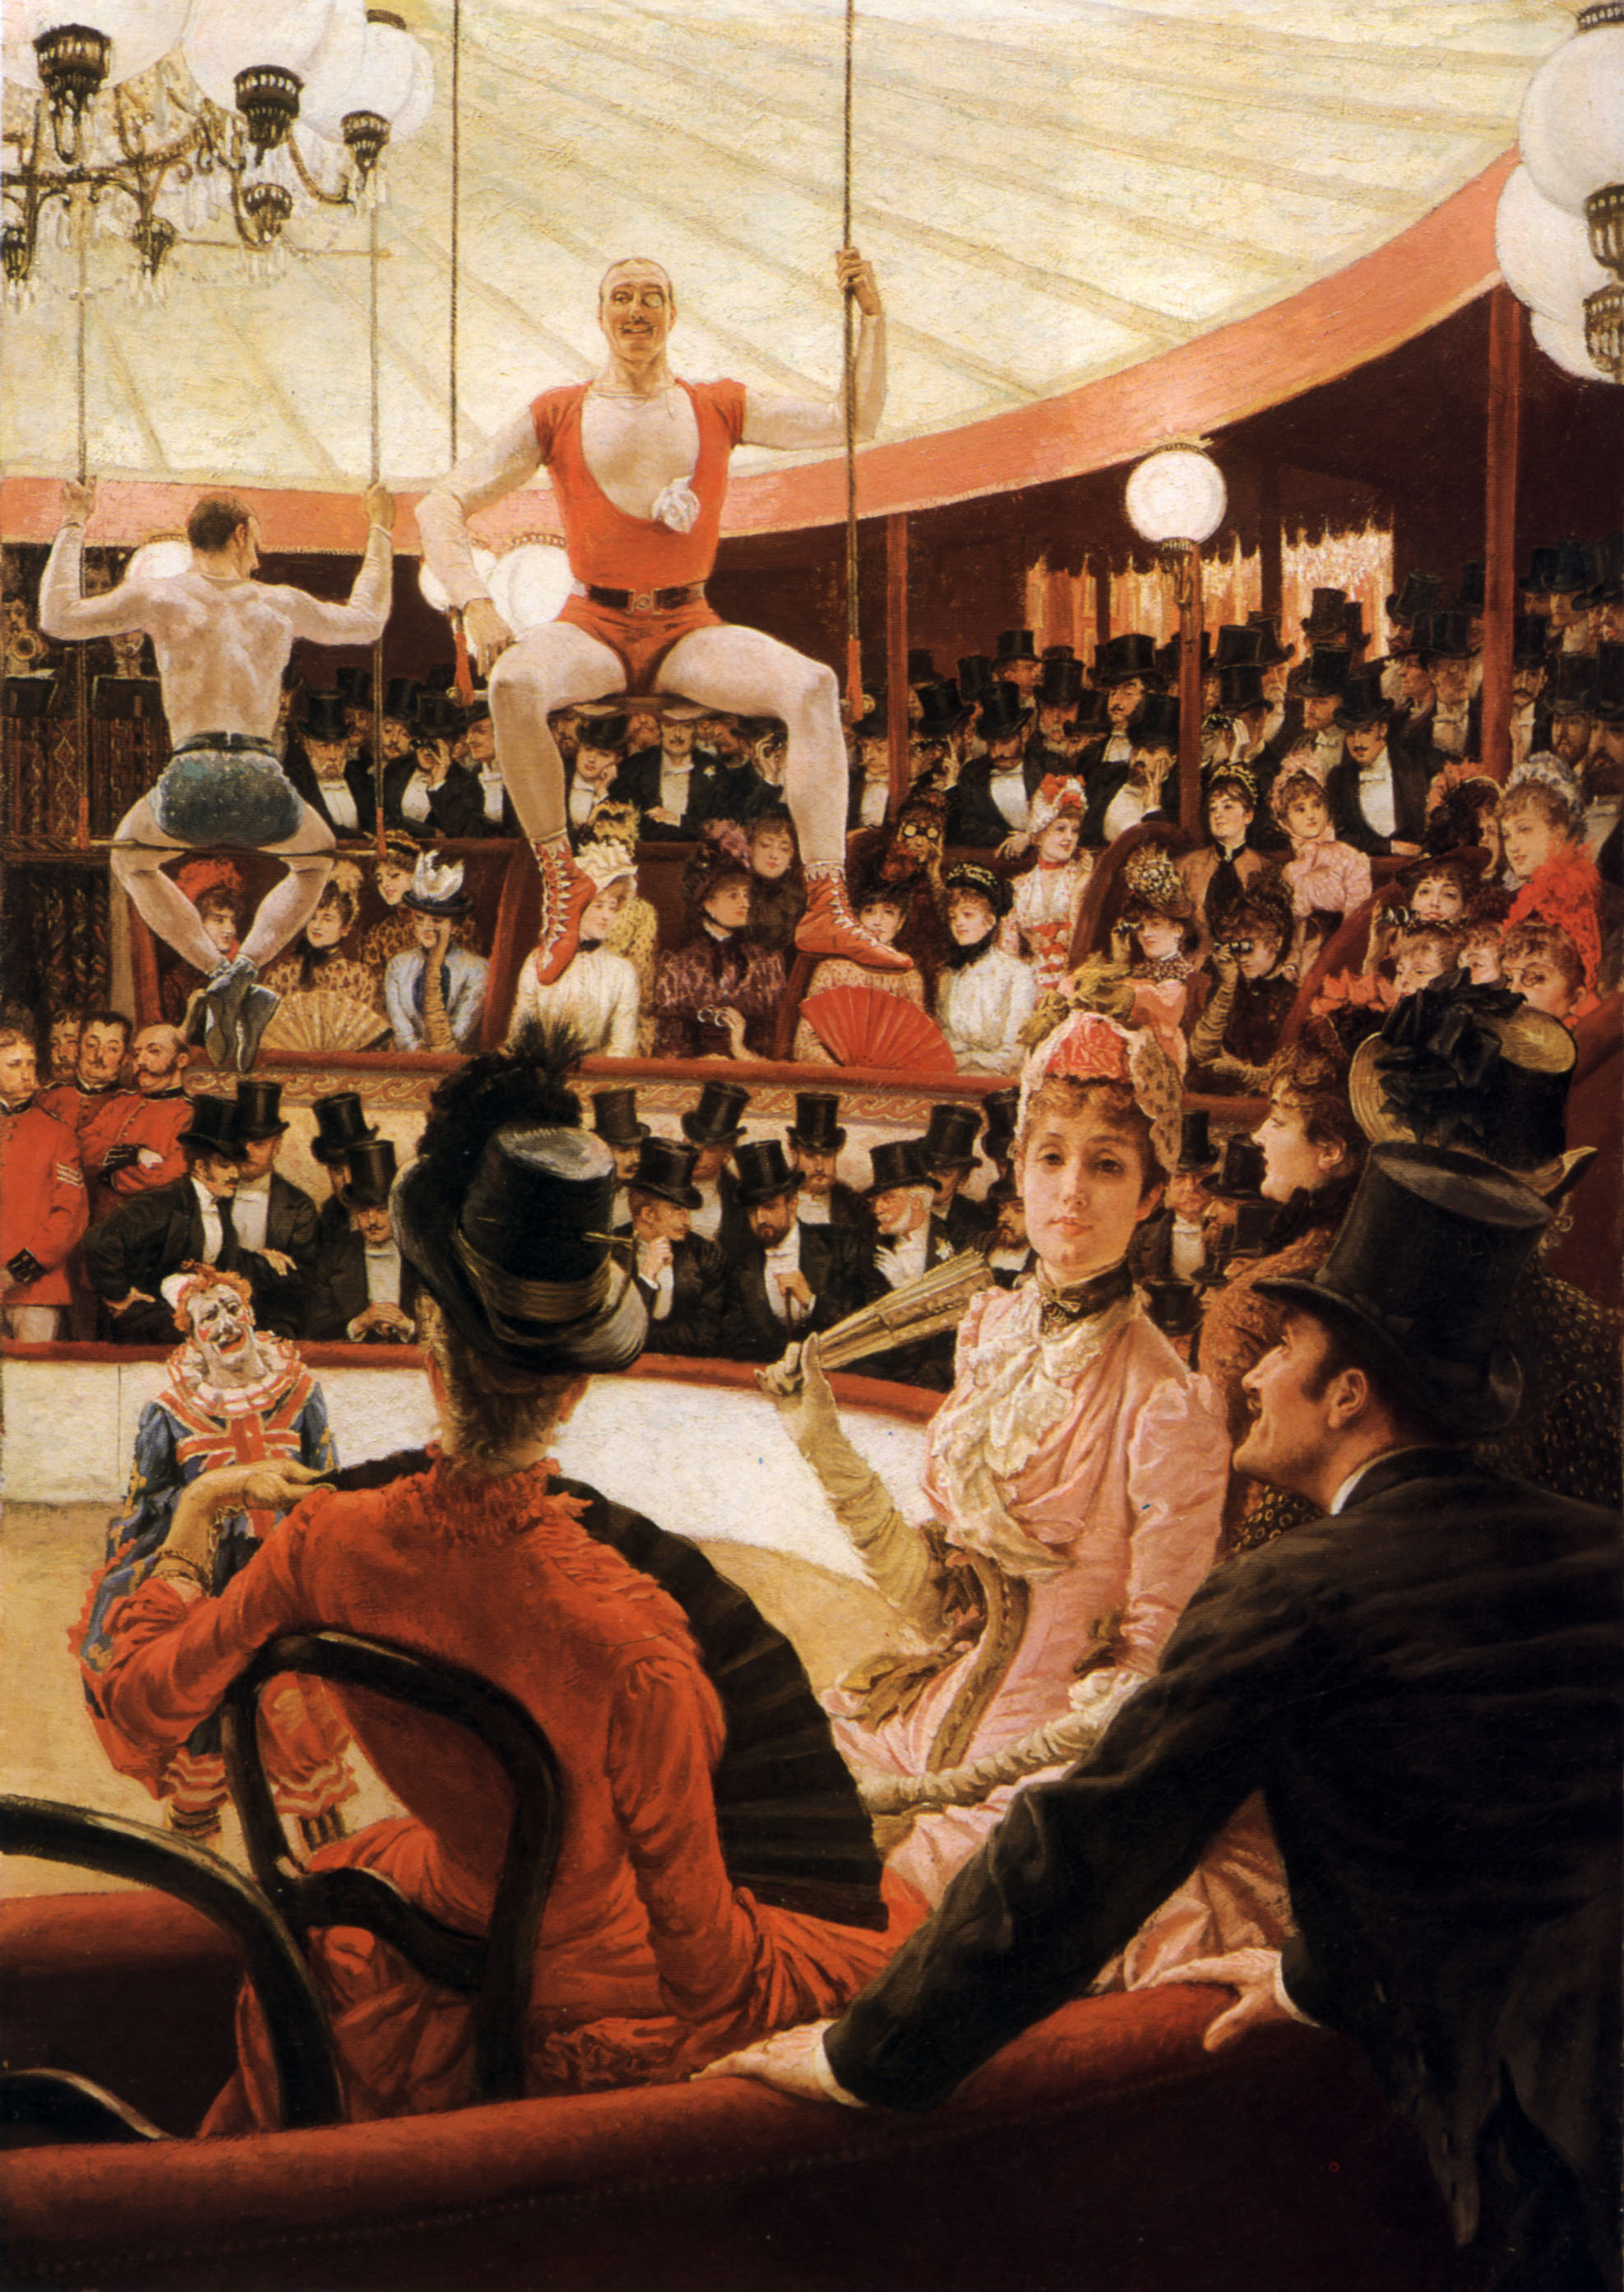 Women of Paris: The Circus Lover